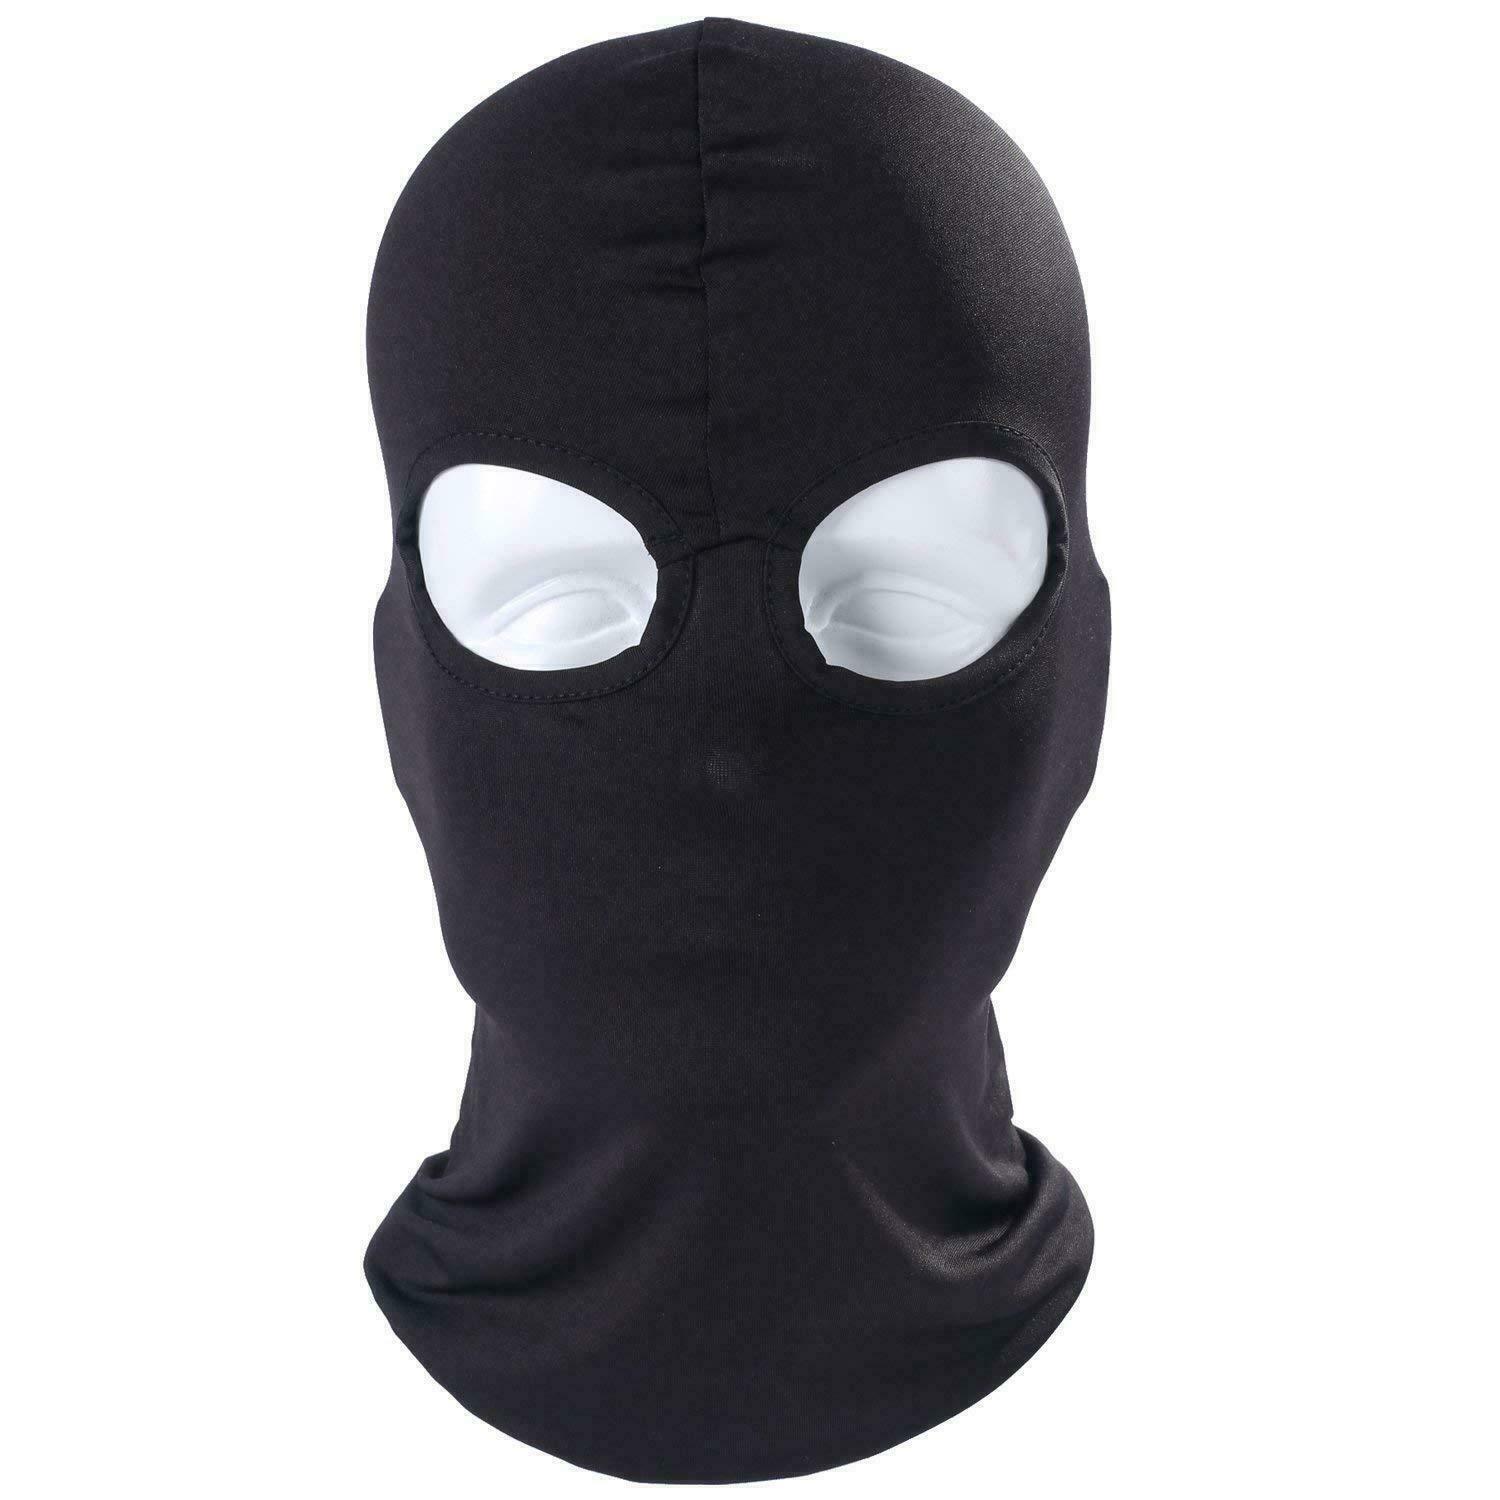 Halloween Adult Disappearing Man Hood Faceless Mask No Face Costume Accessory